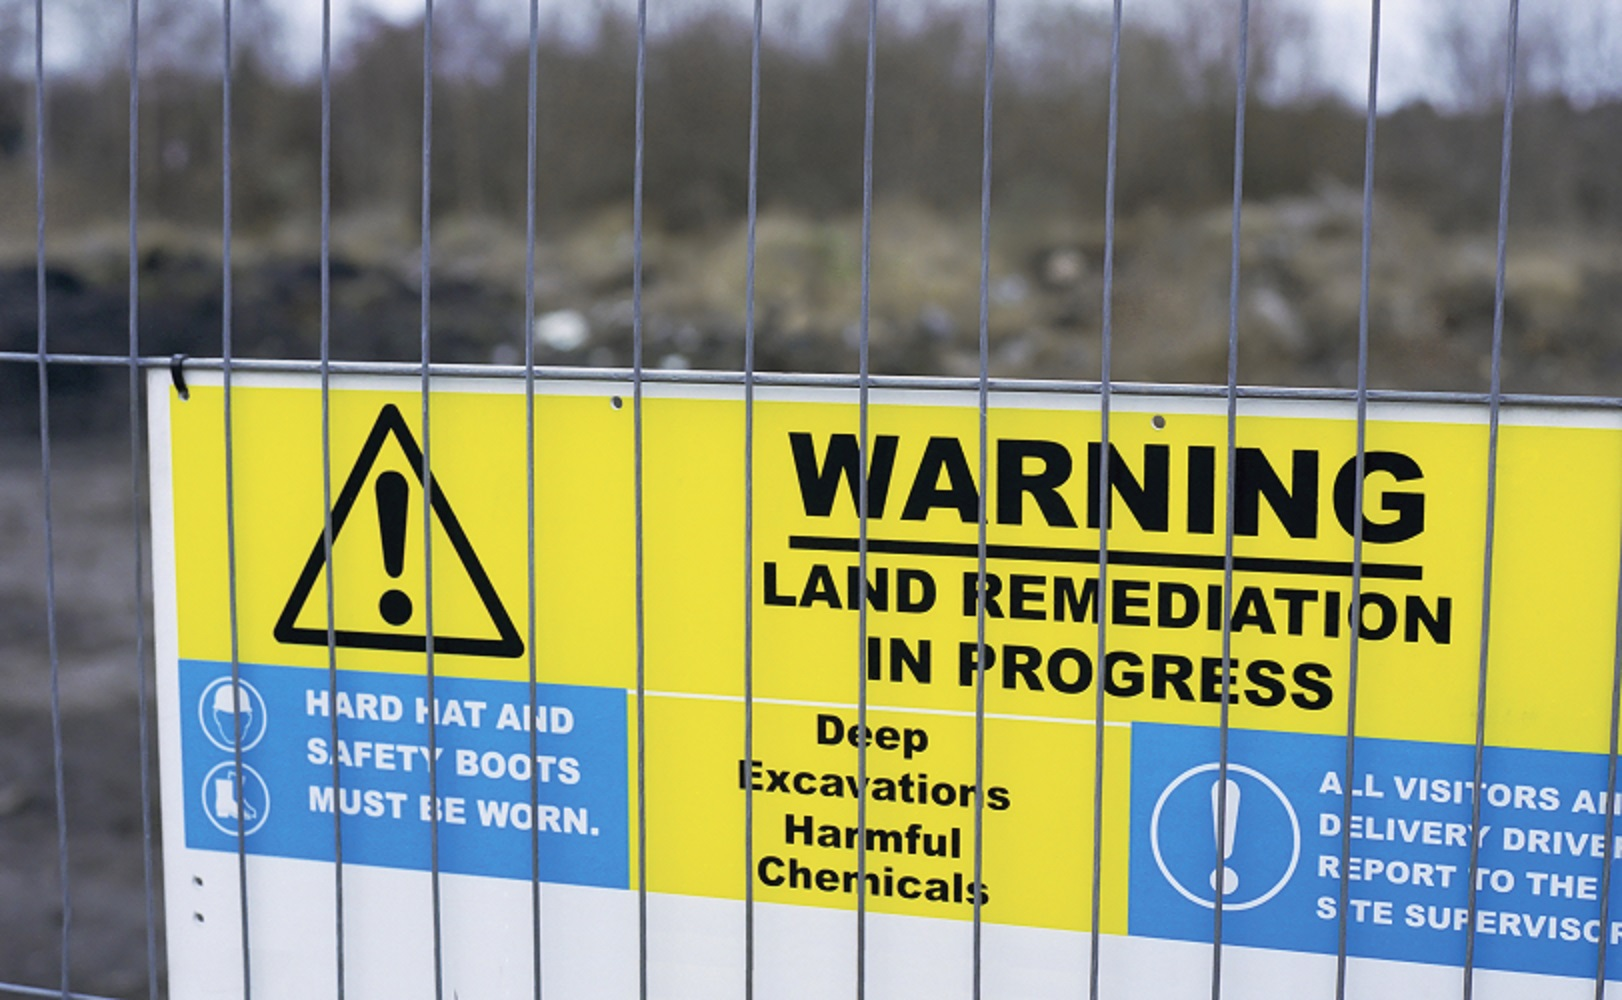 EPA collaborates with state of Michigan on Hazardous Waste Cleanup of former Landfill